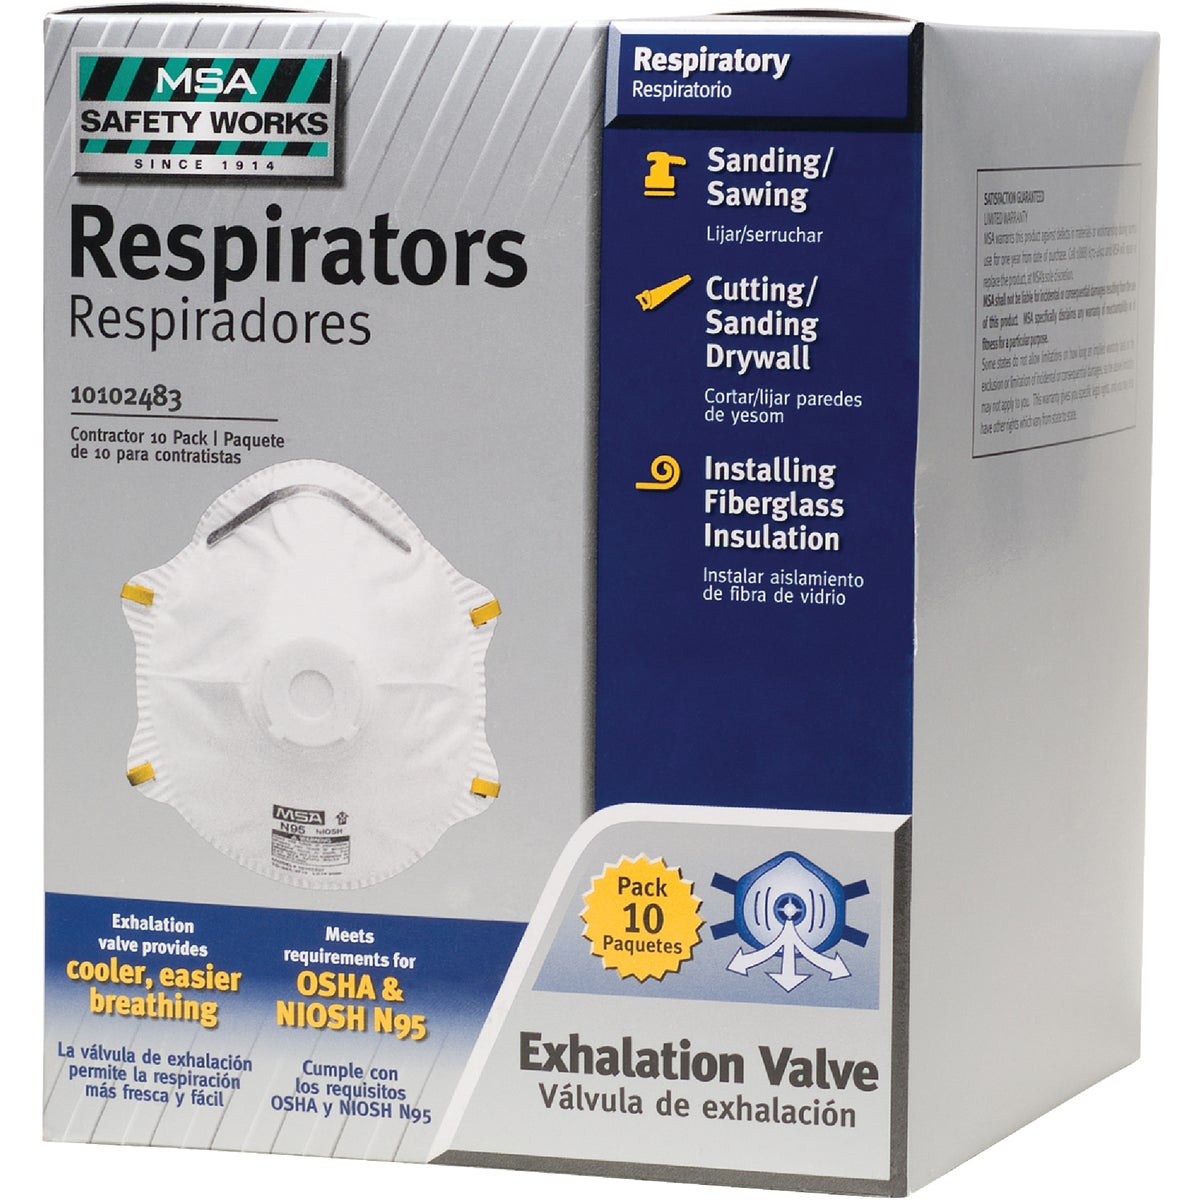 10PK N95 VLV RESPIRATOR - 10102483 by Msa Safety